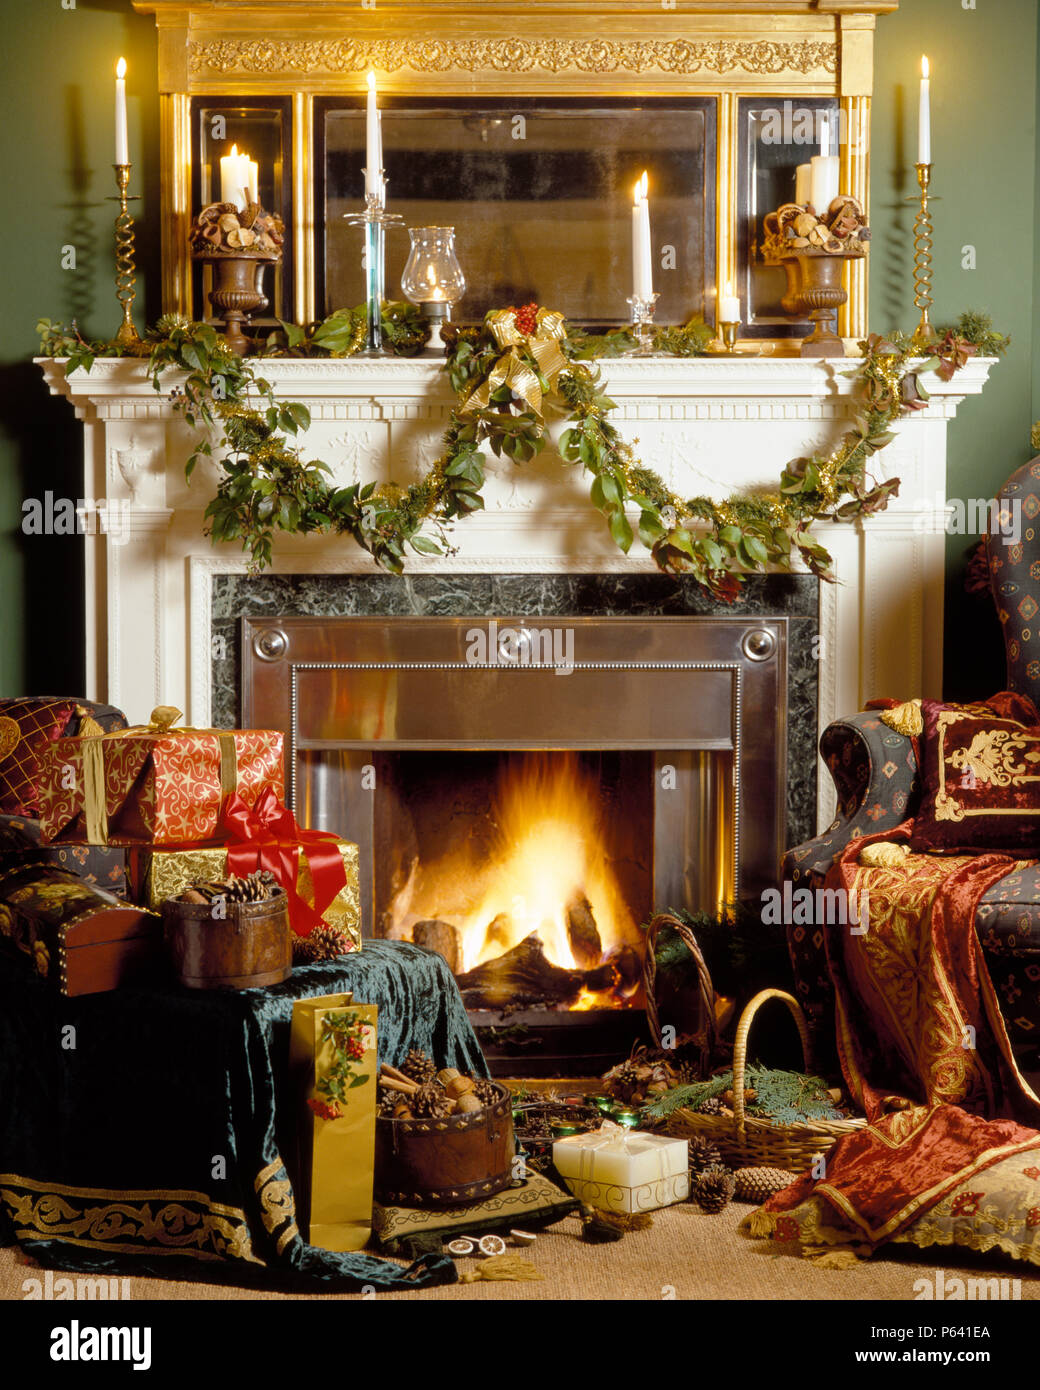 Fireplace With Lighted Firen And Mantlepiece With Lighted Candles